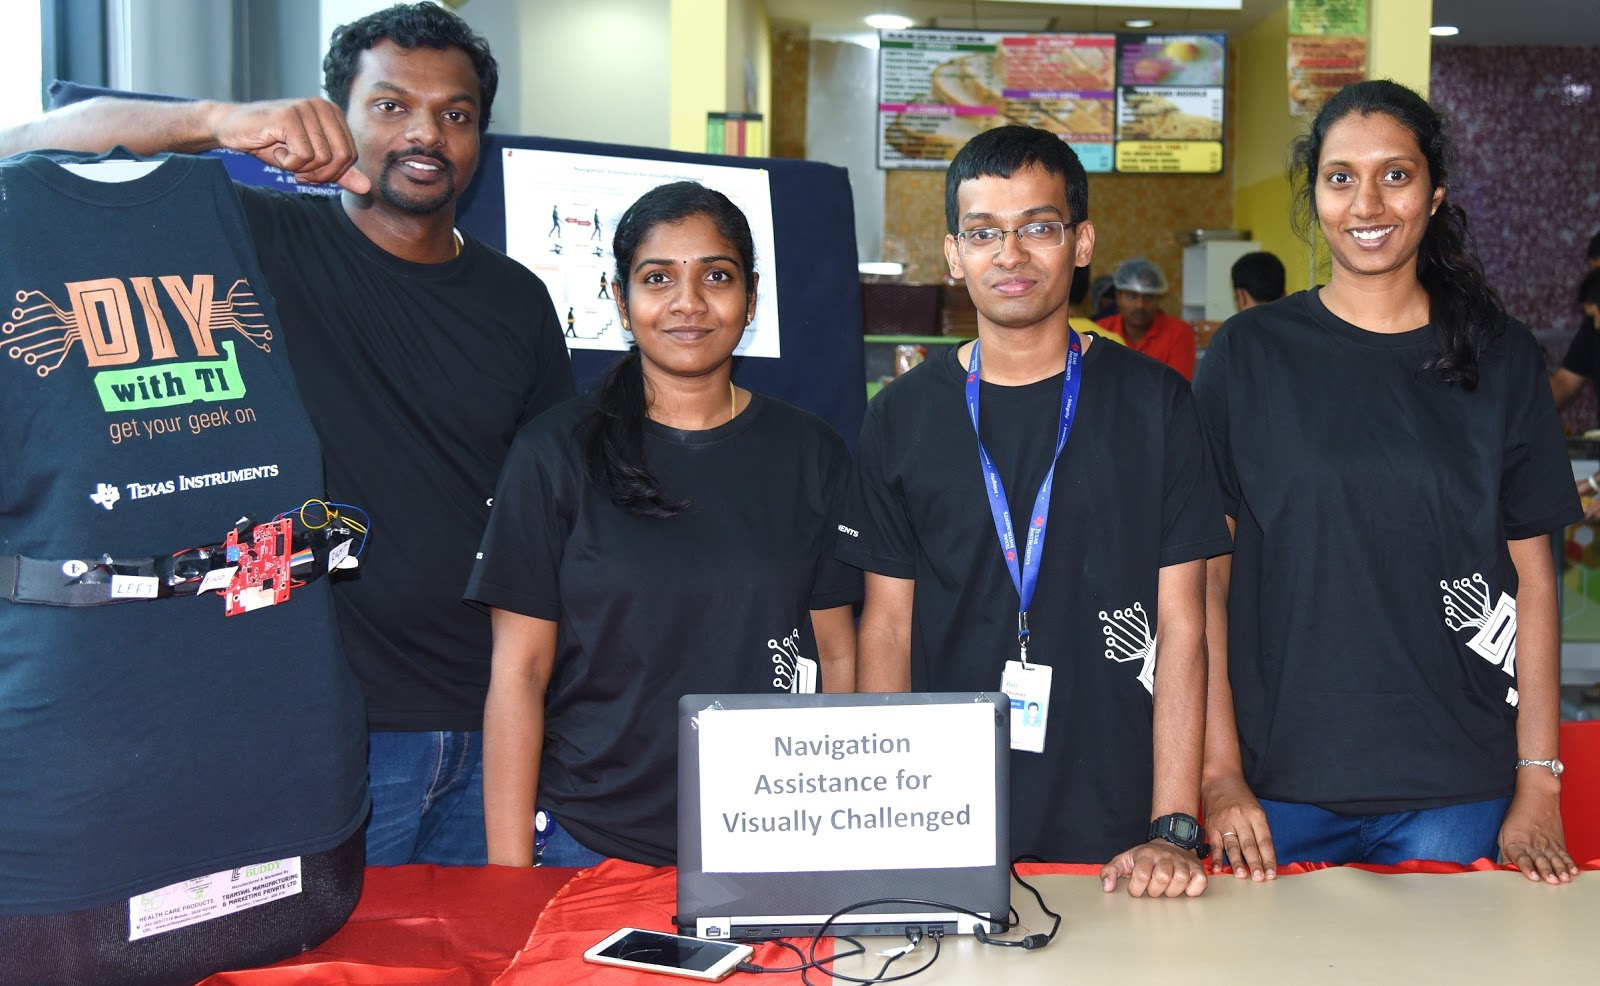 Silicon village texas instruments india hosts diy with ti in texas instruments ti india today hosted the diy with ti event designed to encourage its engineers to build innovative solutions for real life problems solutioingenieria Image collections